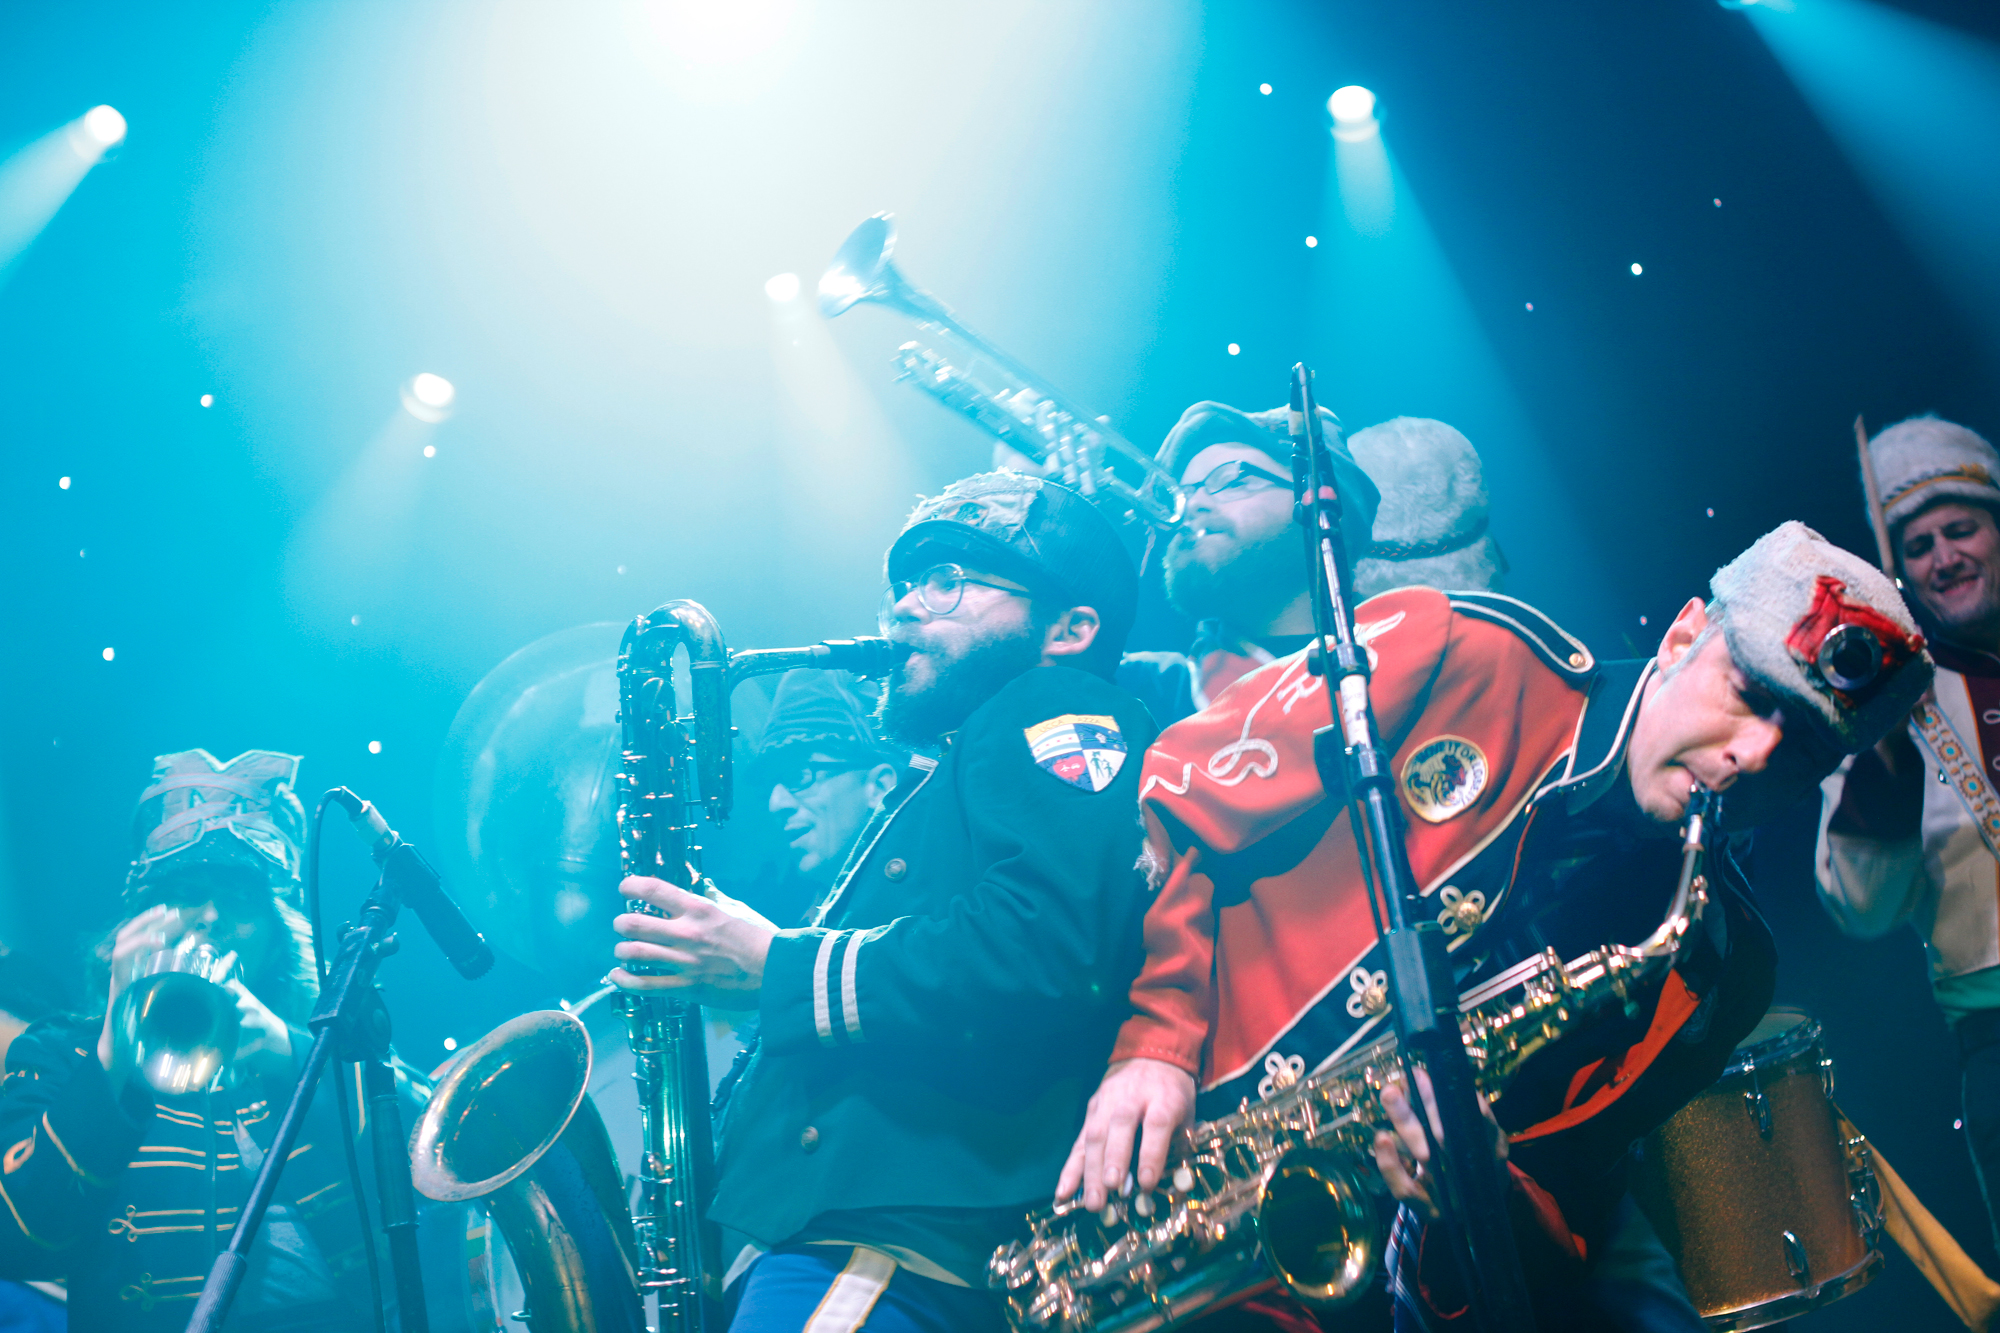 Mucca Pazza plays at globalFEST 2013 at Webster Hall in New York, NY on January 13, 2013.